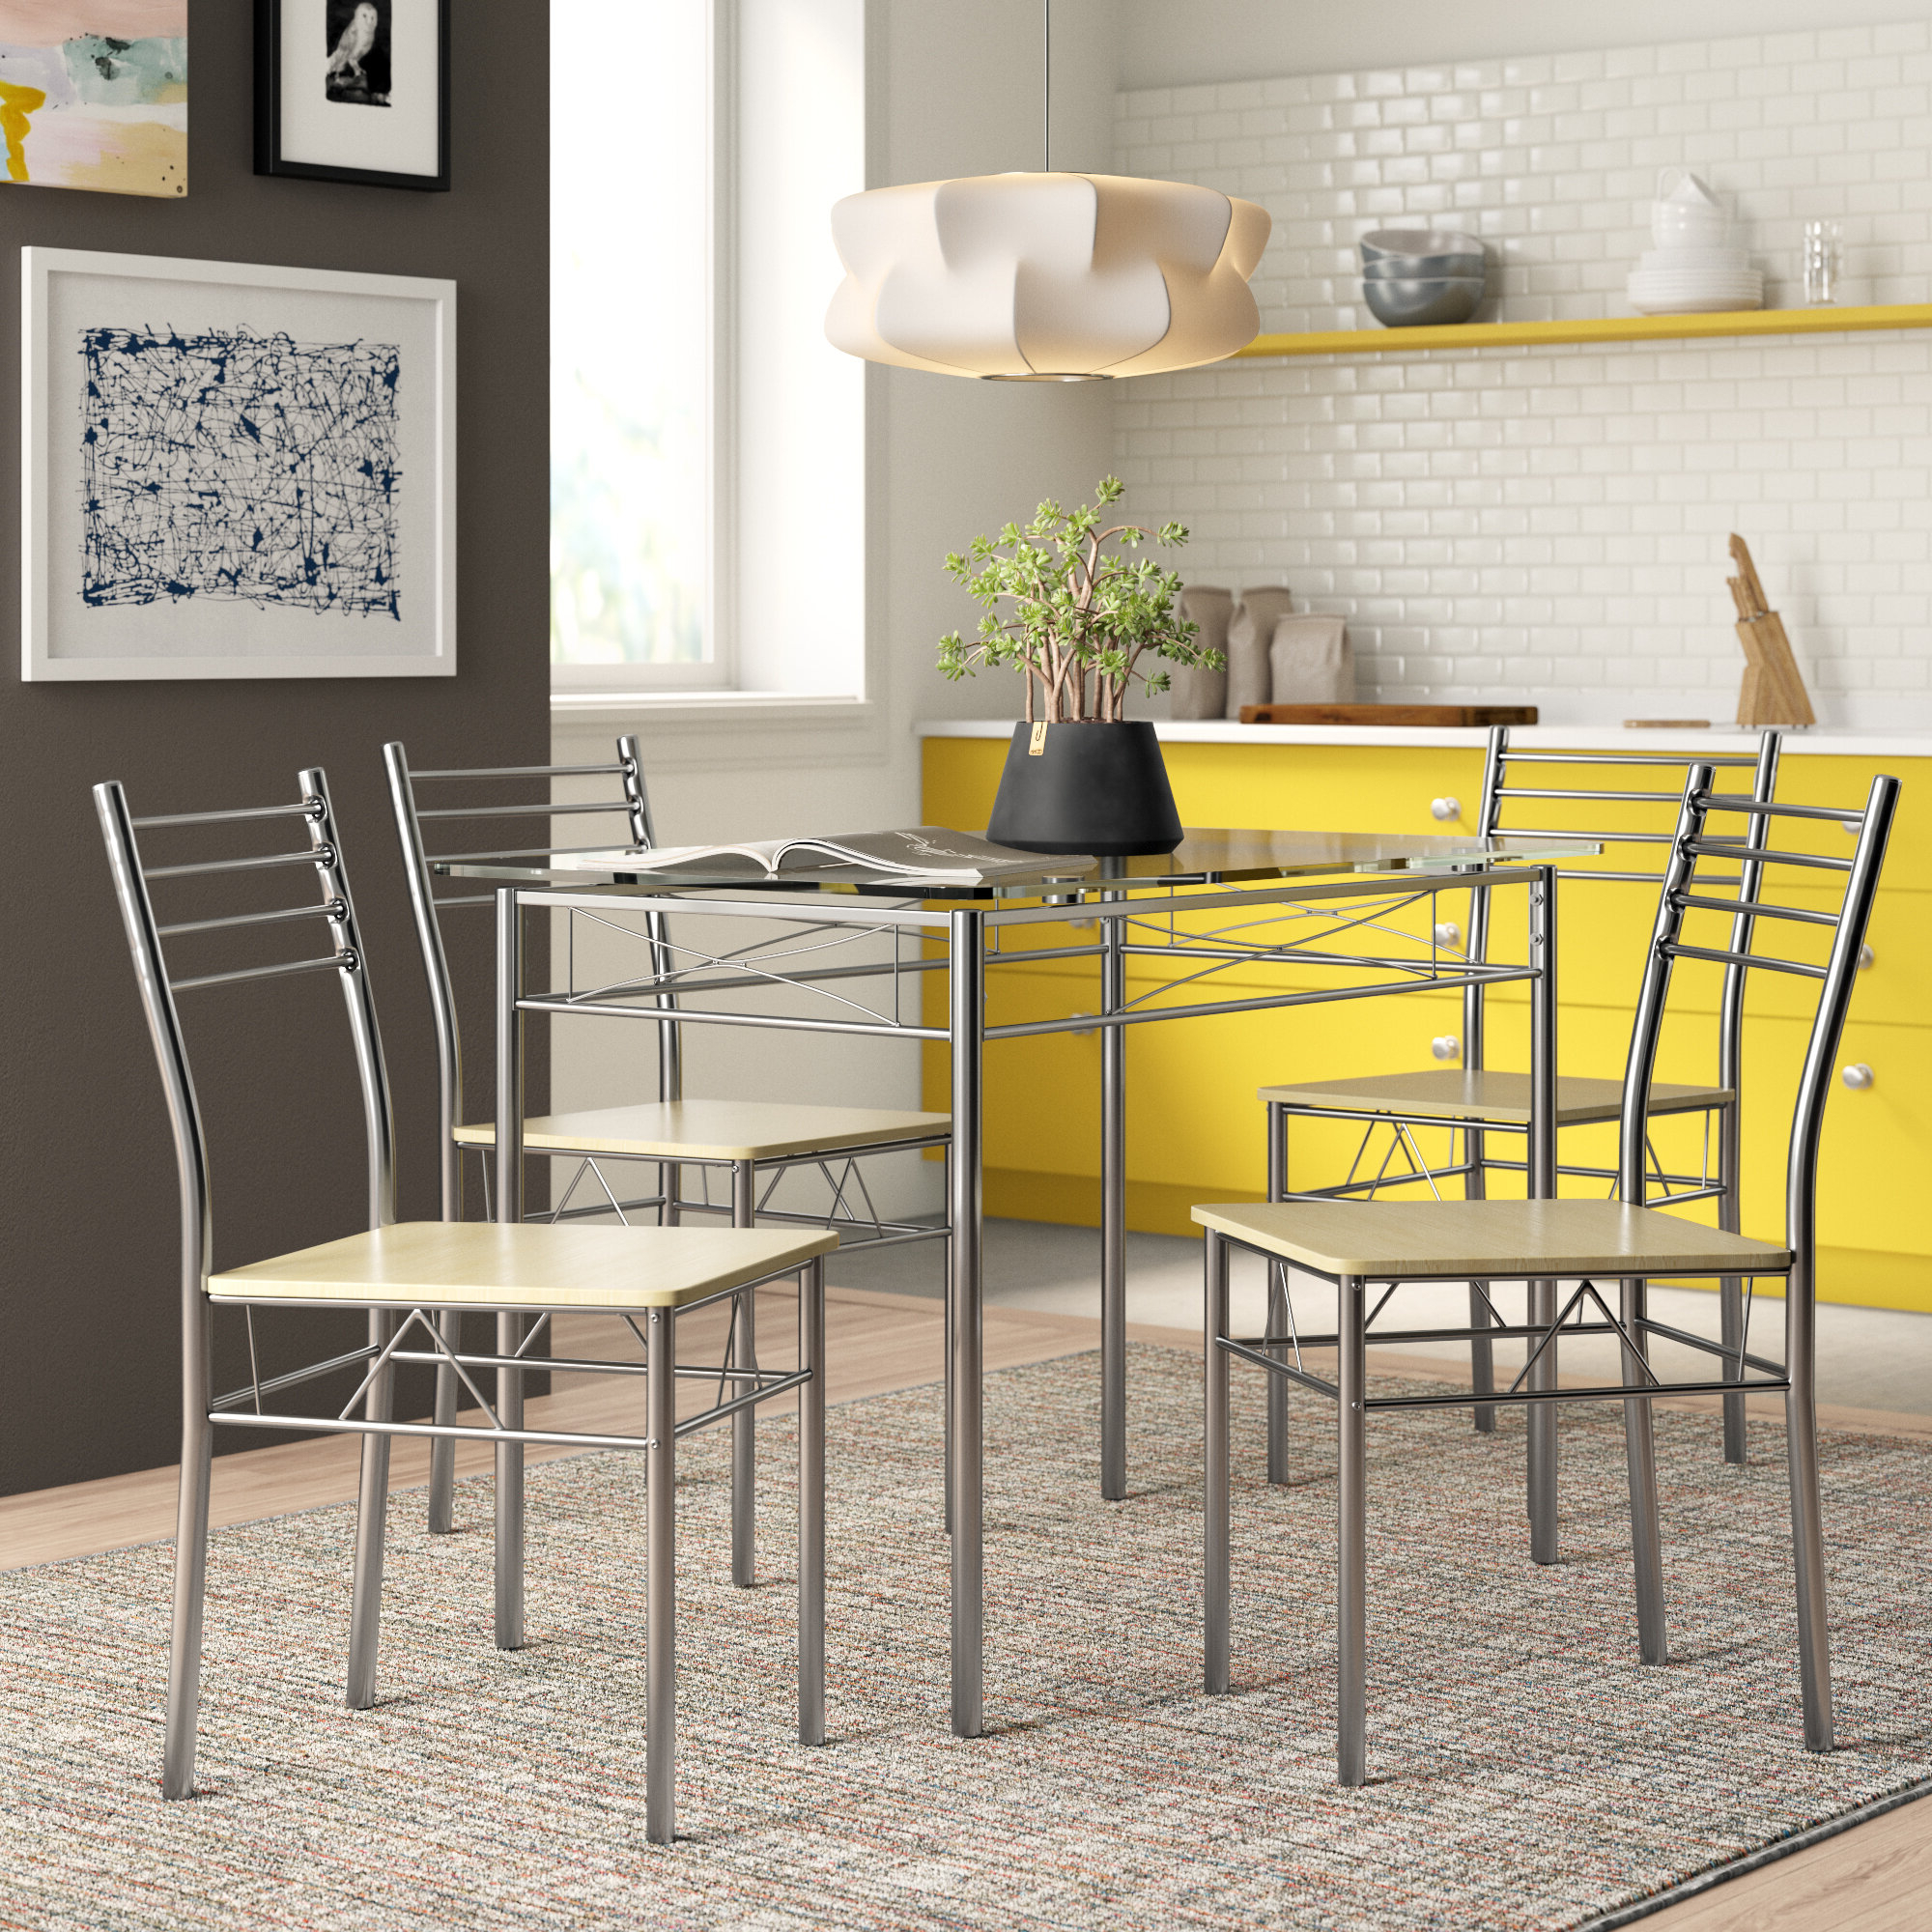 Widely Used Casiano 5 Piece Dining Sets Throughout North Reading 5 Piece Dining Table Set (View 14 of 20)